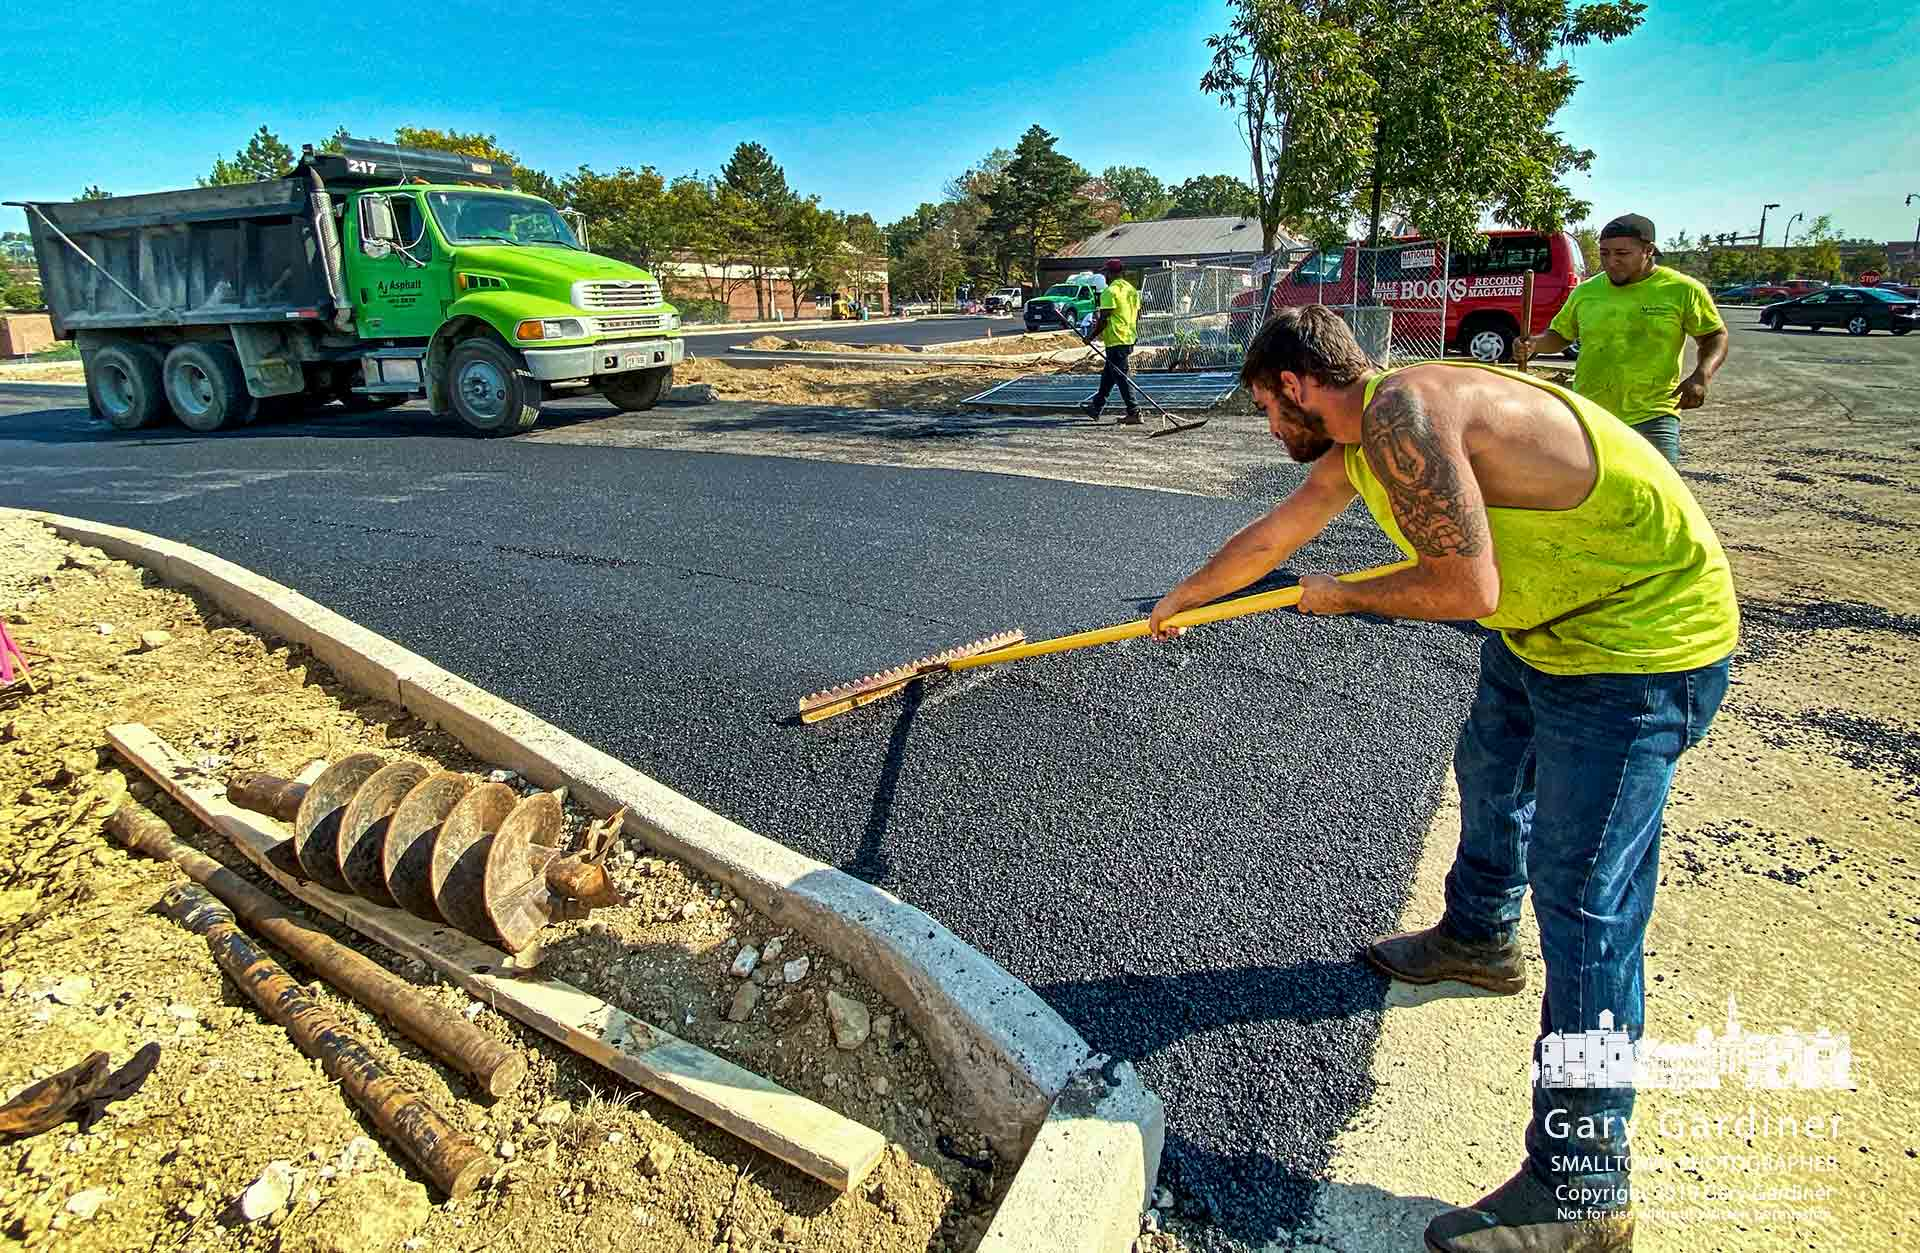 A worker levels a section of freshly poured asphalt at the entrance to what will be the new drive-thru lane for Starbucks on South State Street. My Final Photo for Sept. 30, 2019.